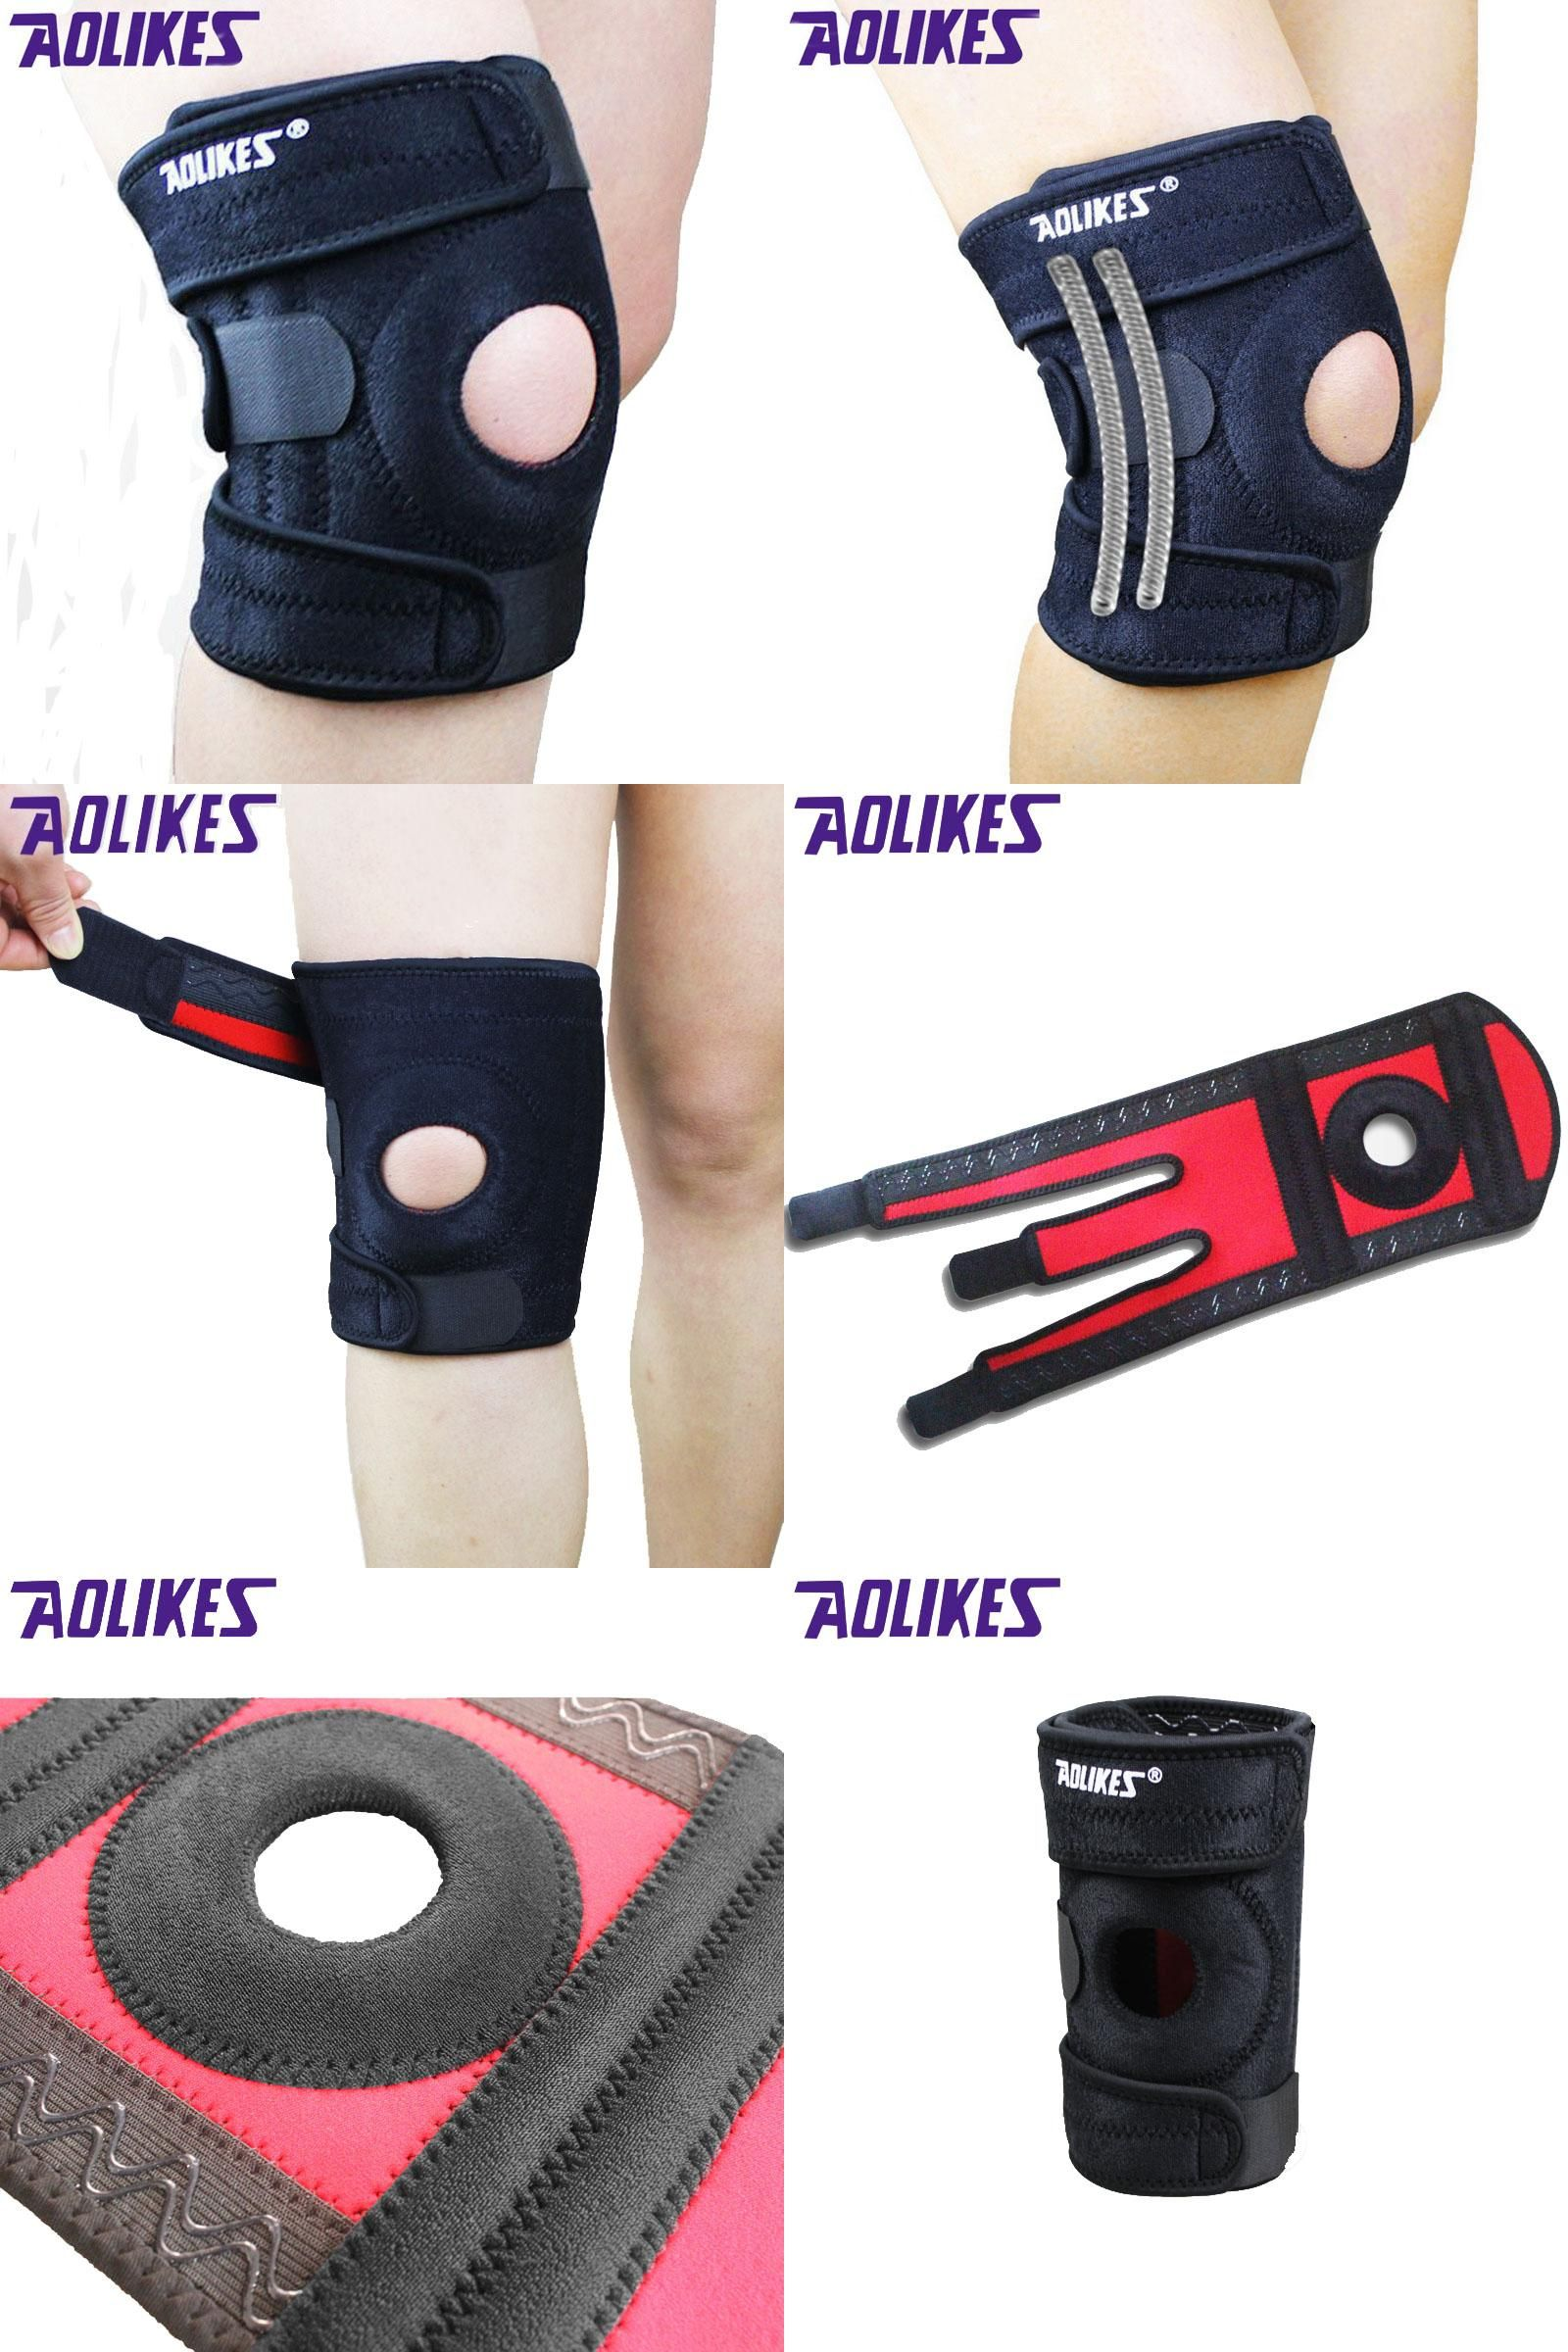 Visit To Buy 1 Piece Aolikes Mountaineering Knee Pad With 4 Springs Support Cycling Knee Protector Mountain Bike Sports Safety Kneepad Brace Ad Sports Safety